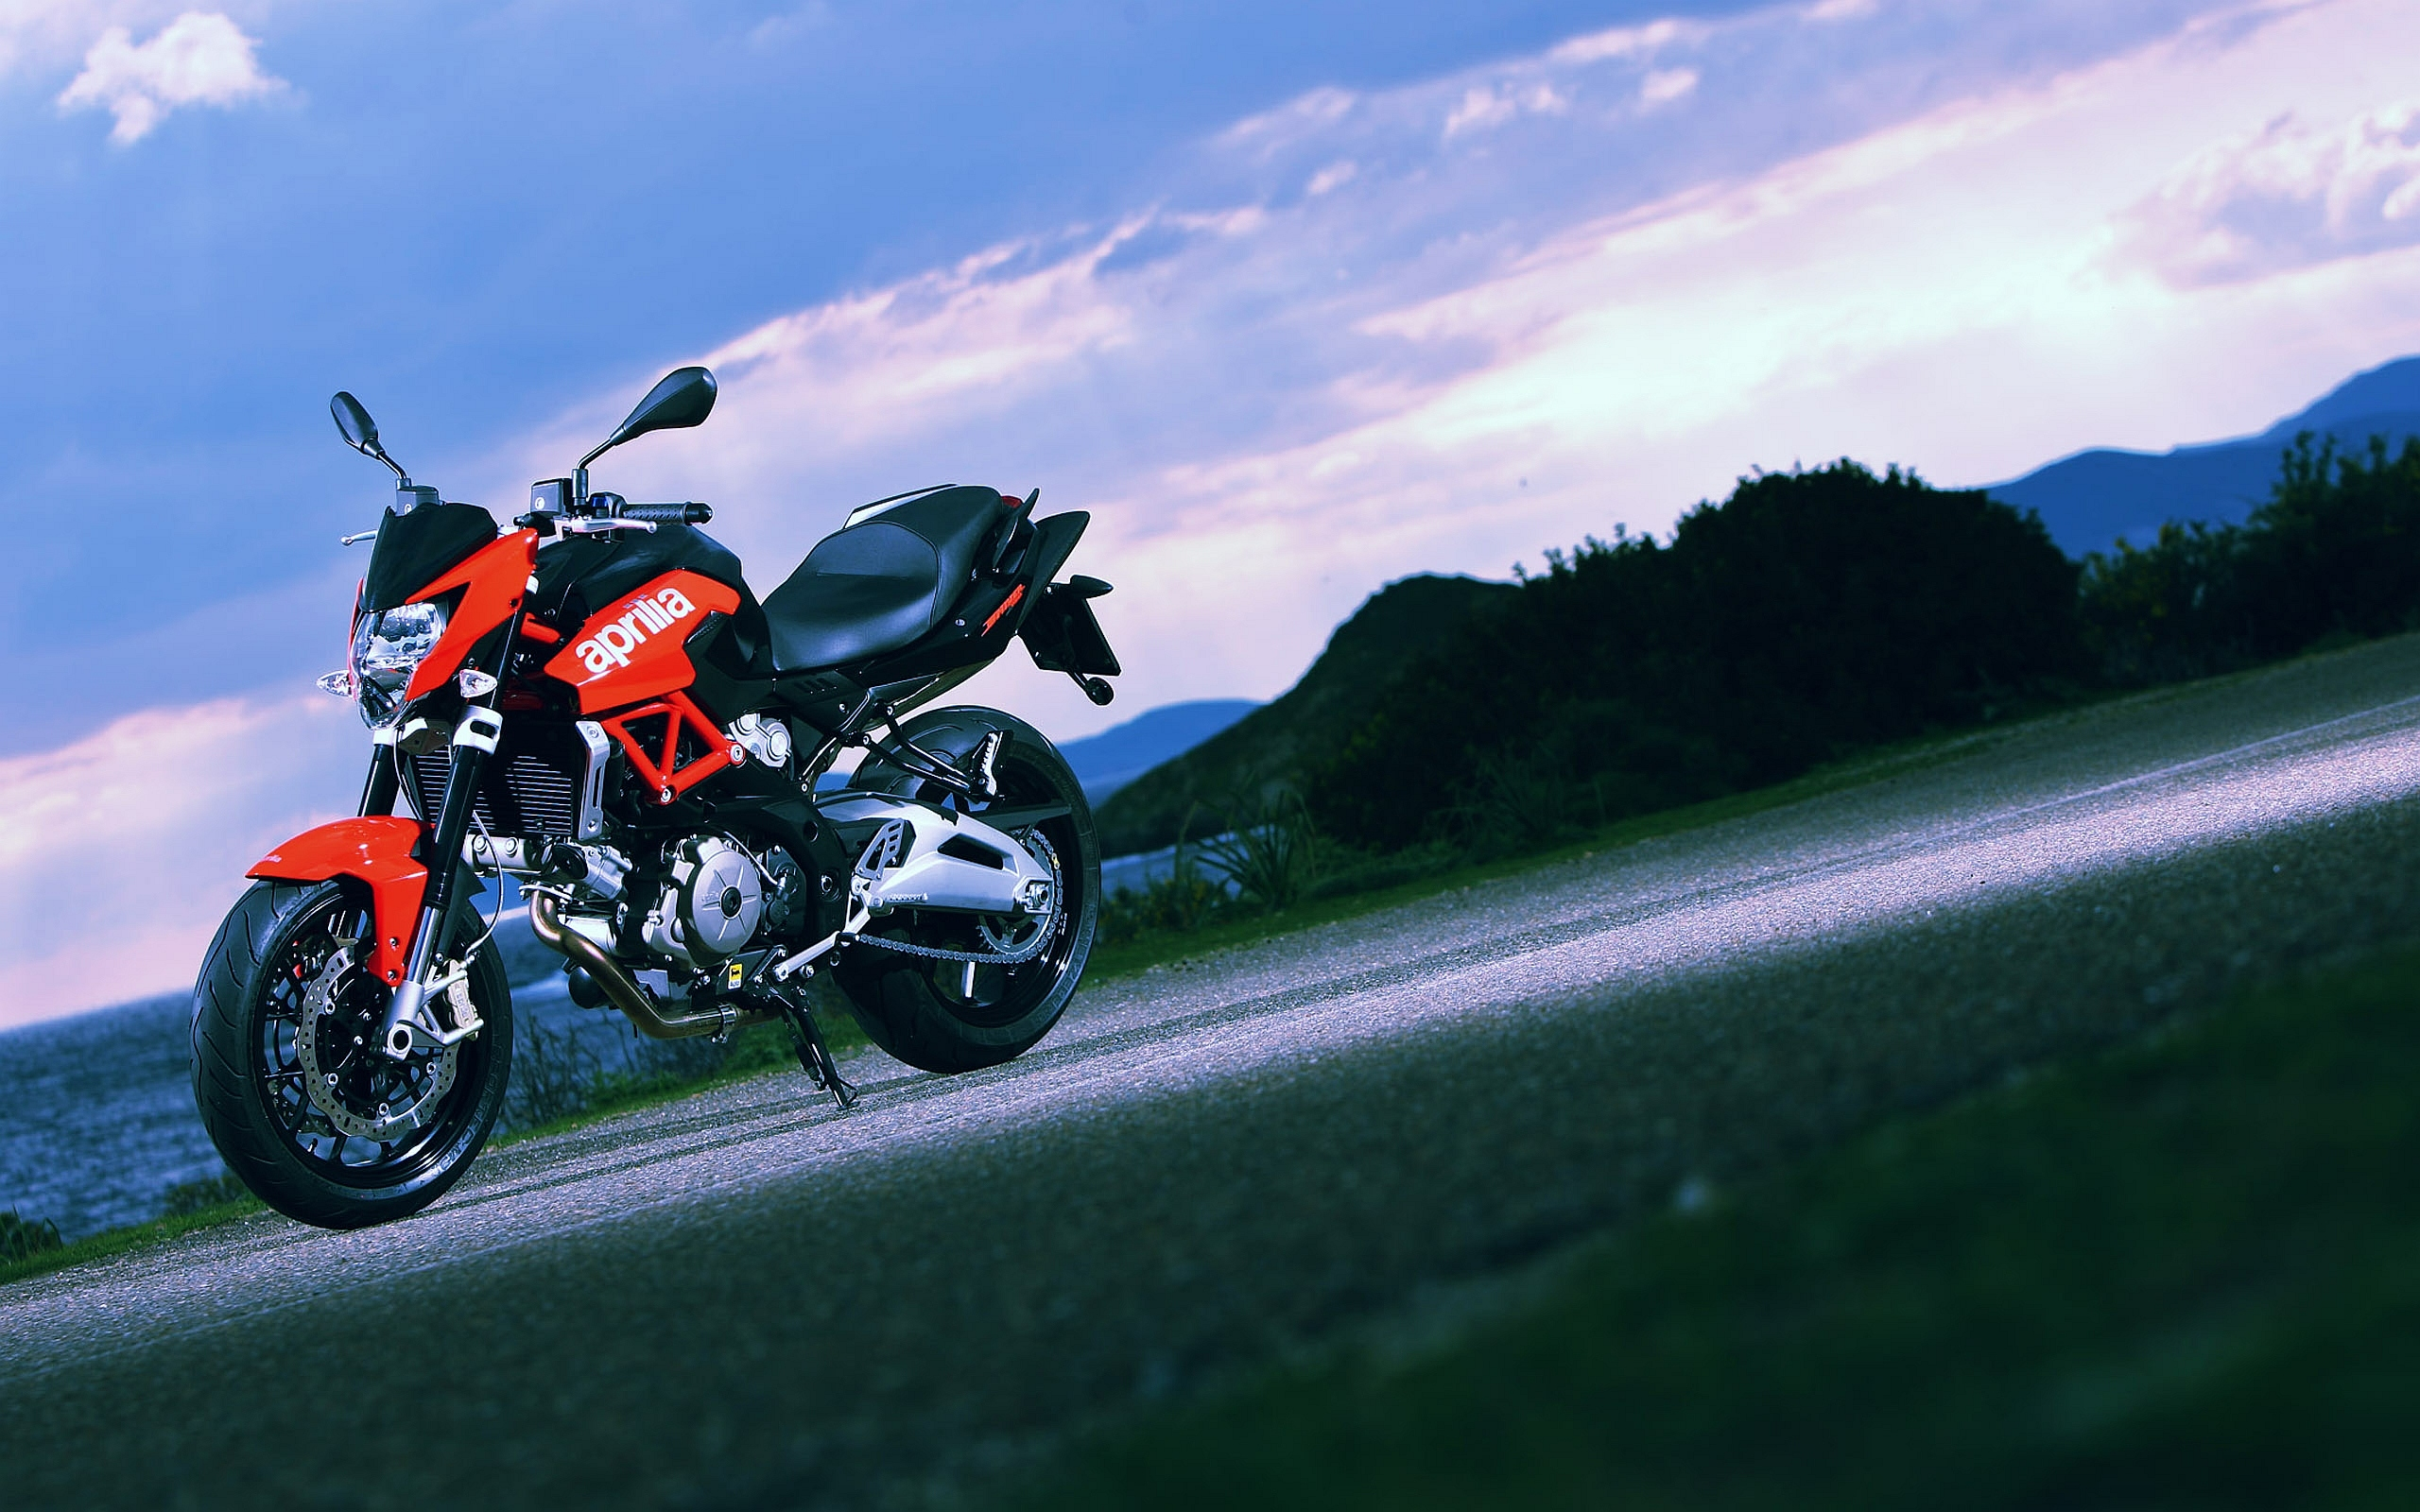 Aprilia Wallpapers 7N62VY7   4USkY 2560x1600